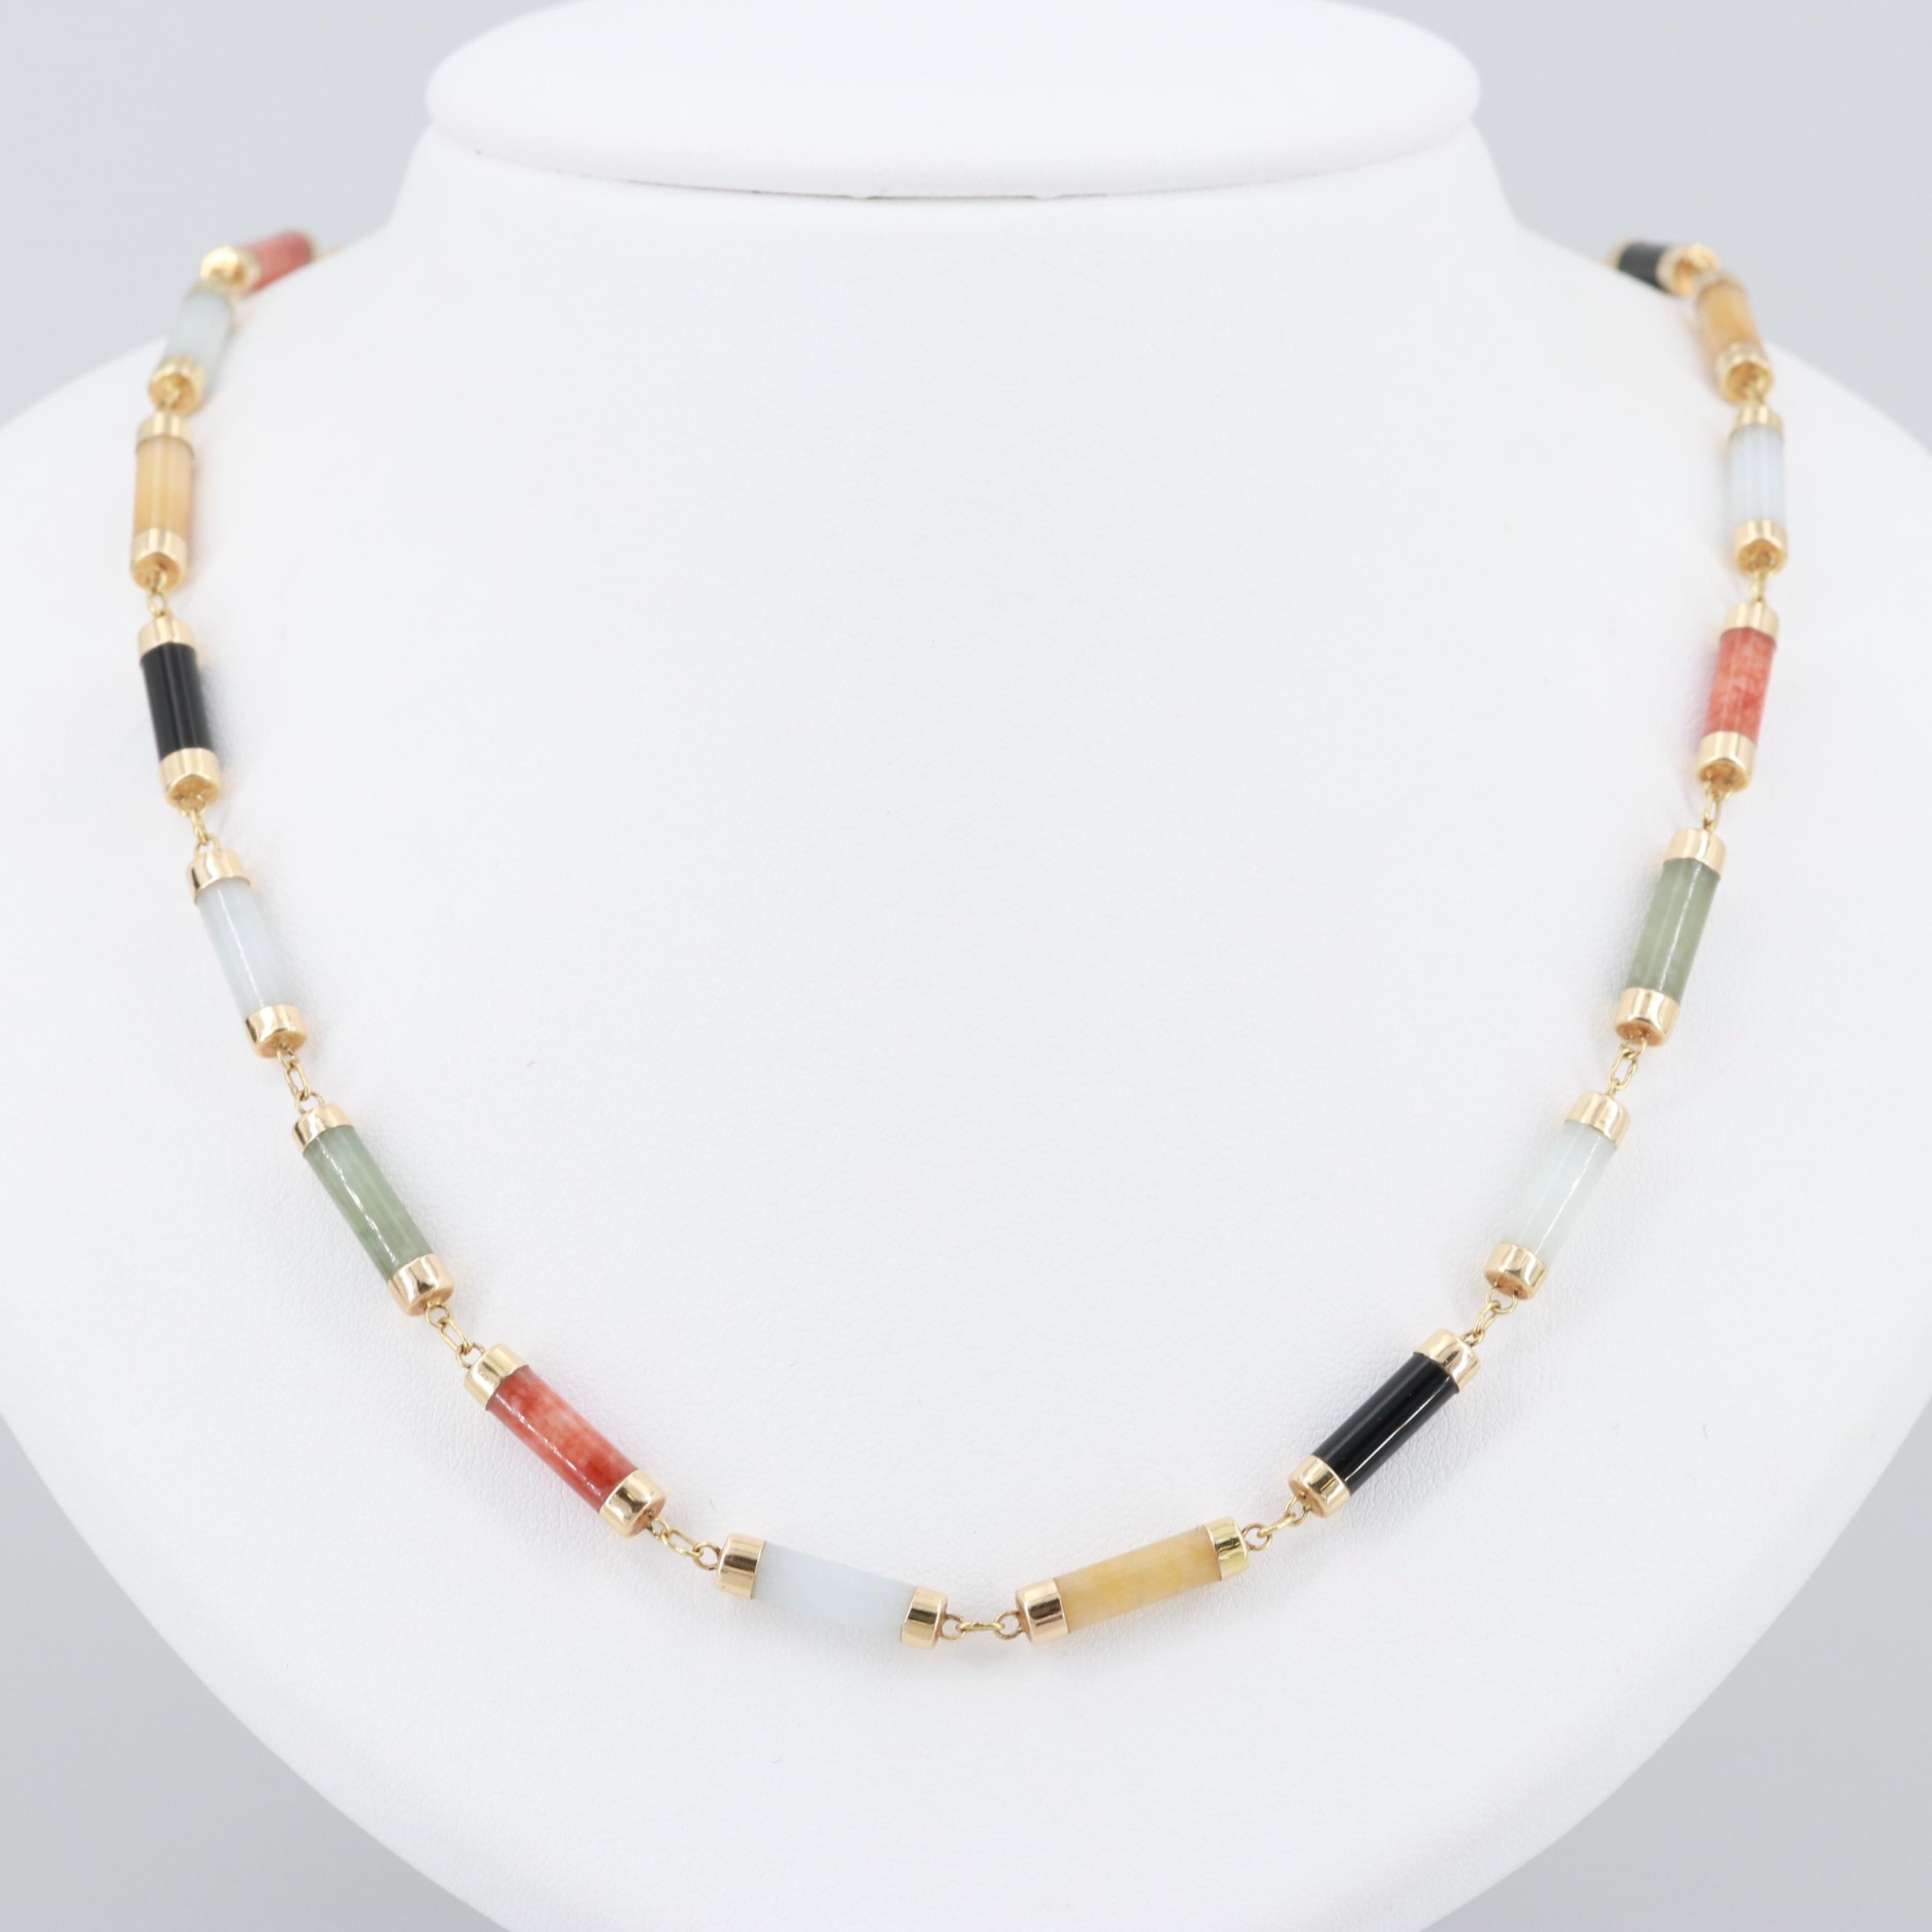 Chinese 14K Yellow Gold Dyed Jadeite and Black Onyx Necklace